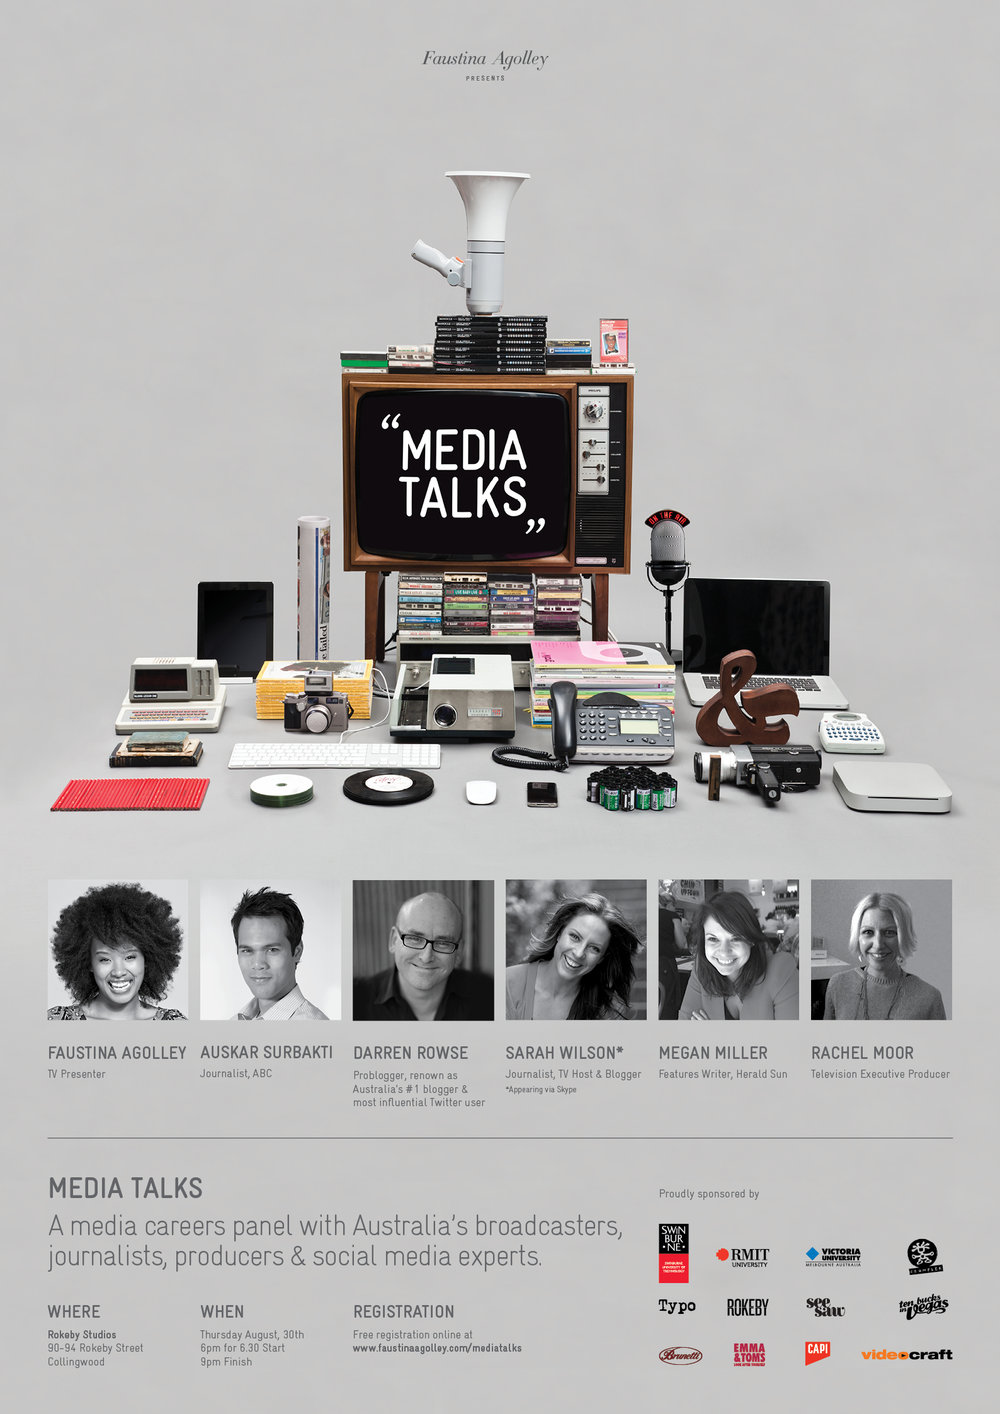 Media-Talks-Media-Careers-Panel1.jpg